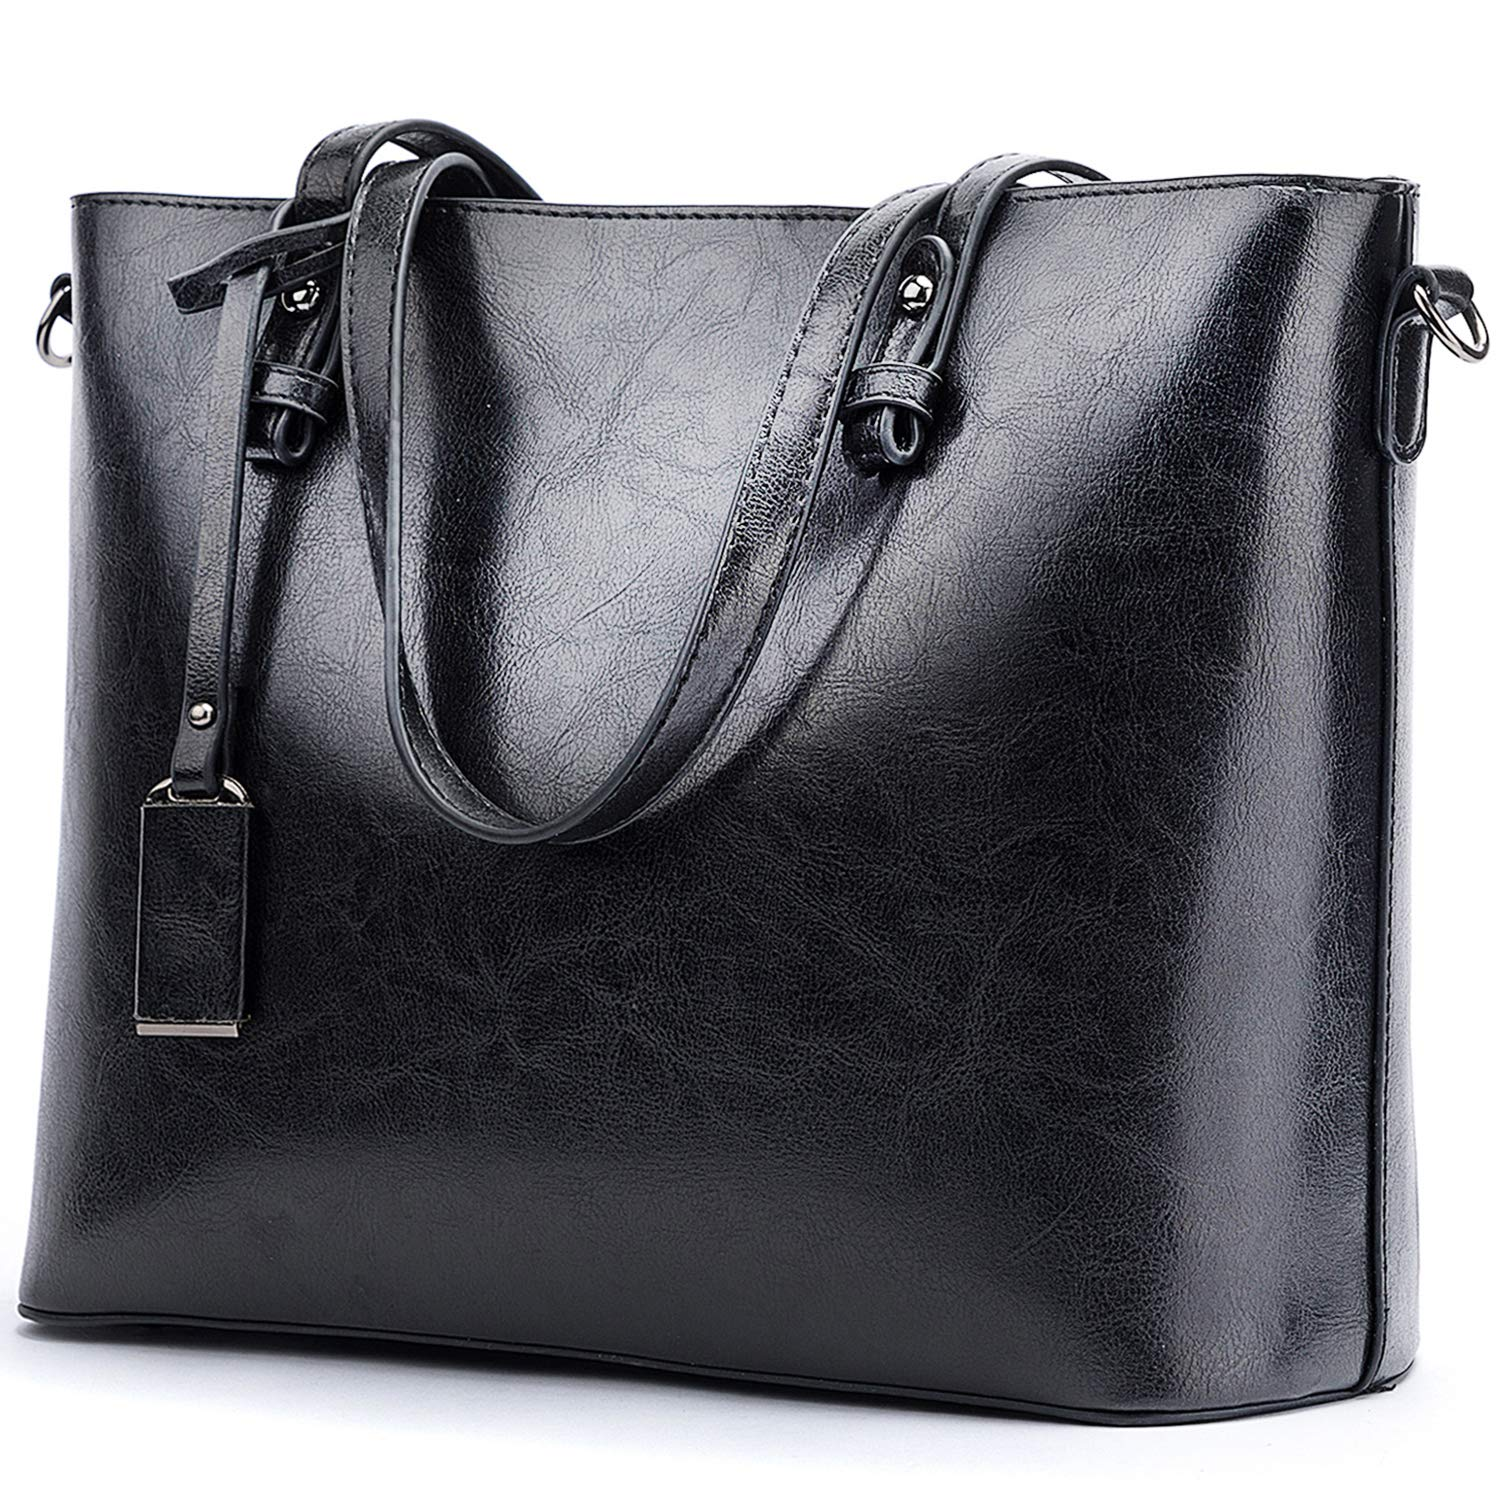 catch release date the sale of shoes Amazon.com: BNWVC Women Purses and Handbags for Women ...